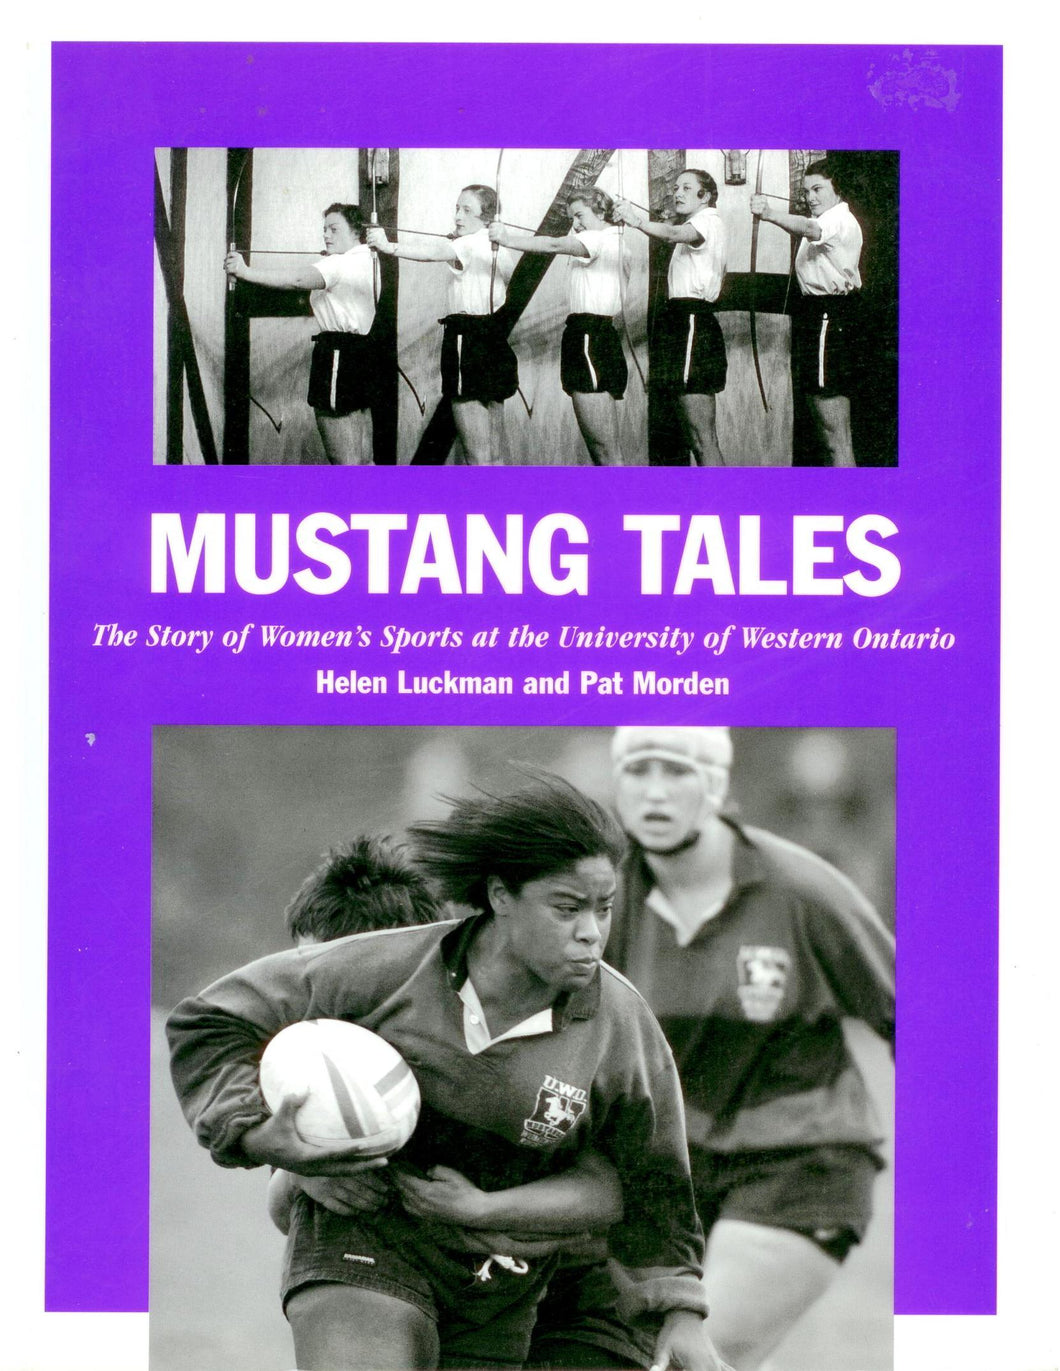 Mustang Tales: The Story of Women's Sports at the University of Western Ontario